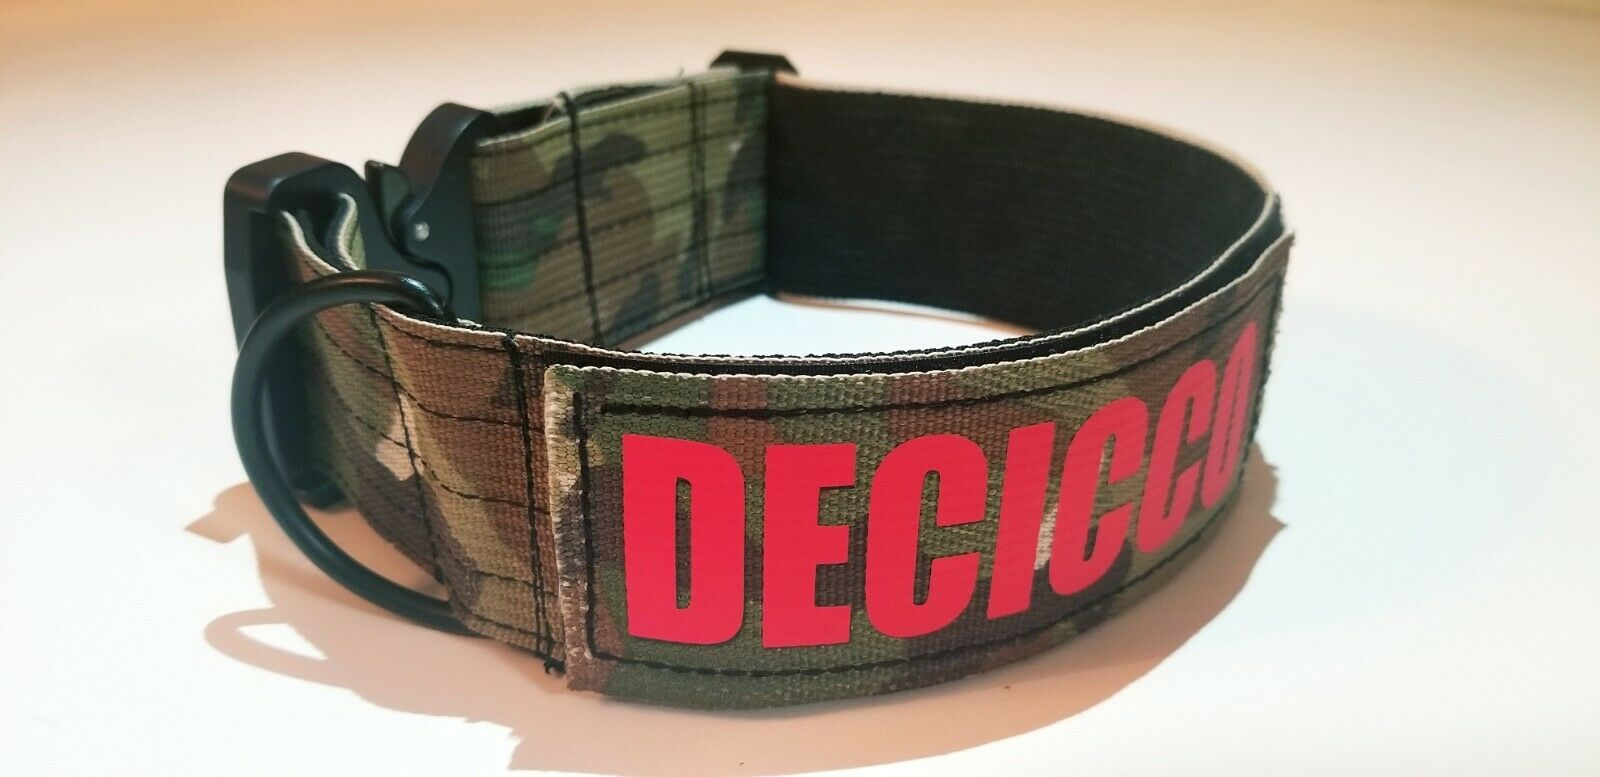 k9 Tactical Dog Collar Personalized 2 Multicam Green with Name Patch